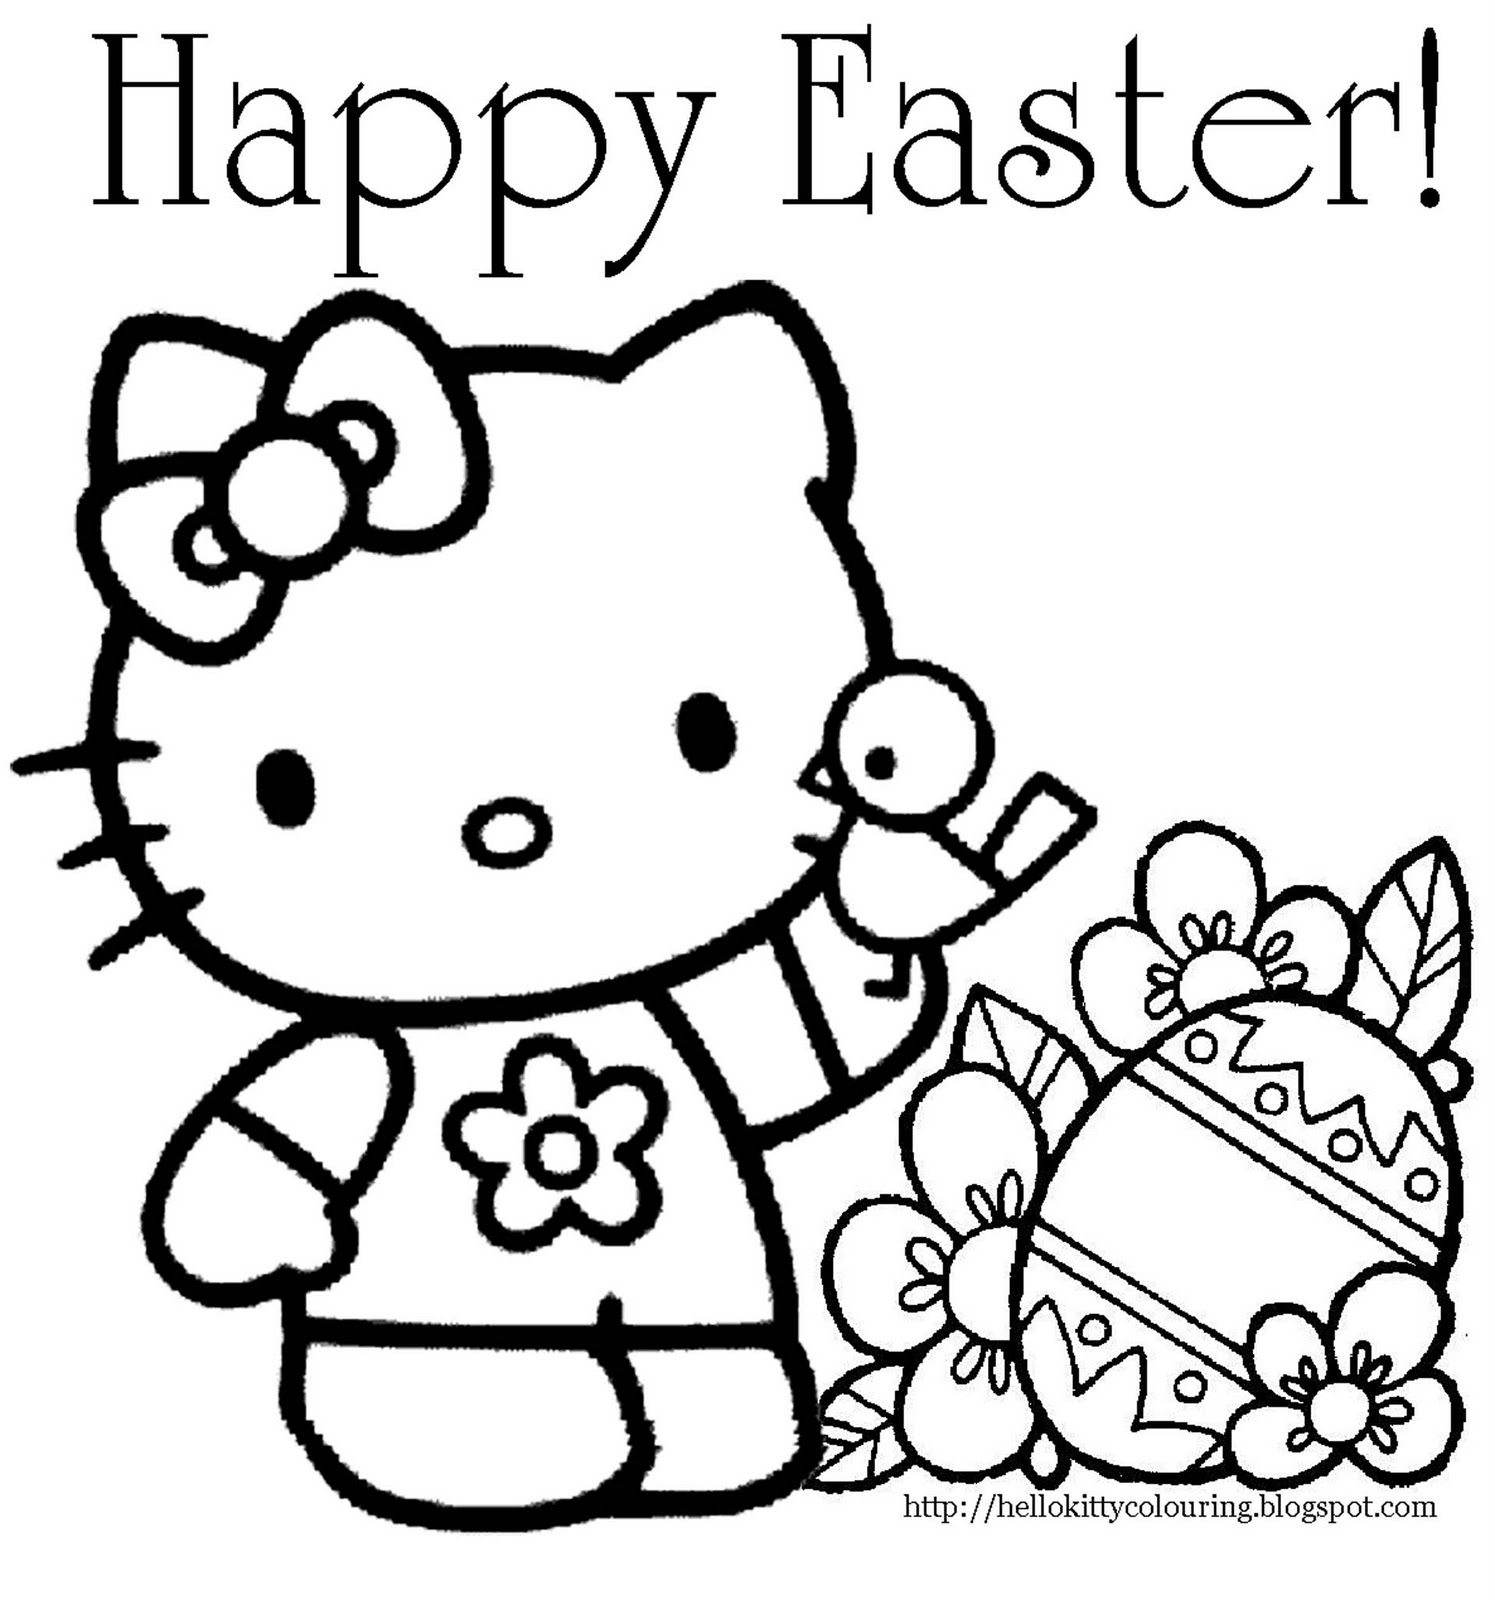 Easter Colouring Miscellaneous Easter Colouring Pages Easter Coloring Pages To Print Out